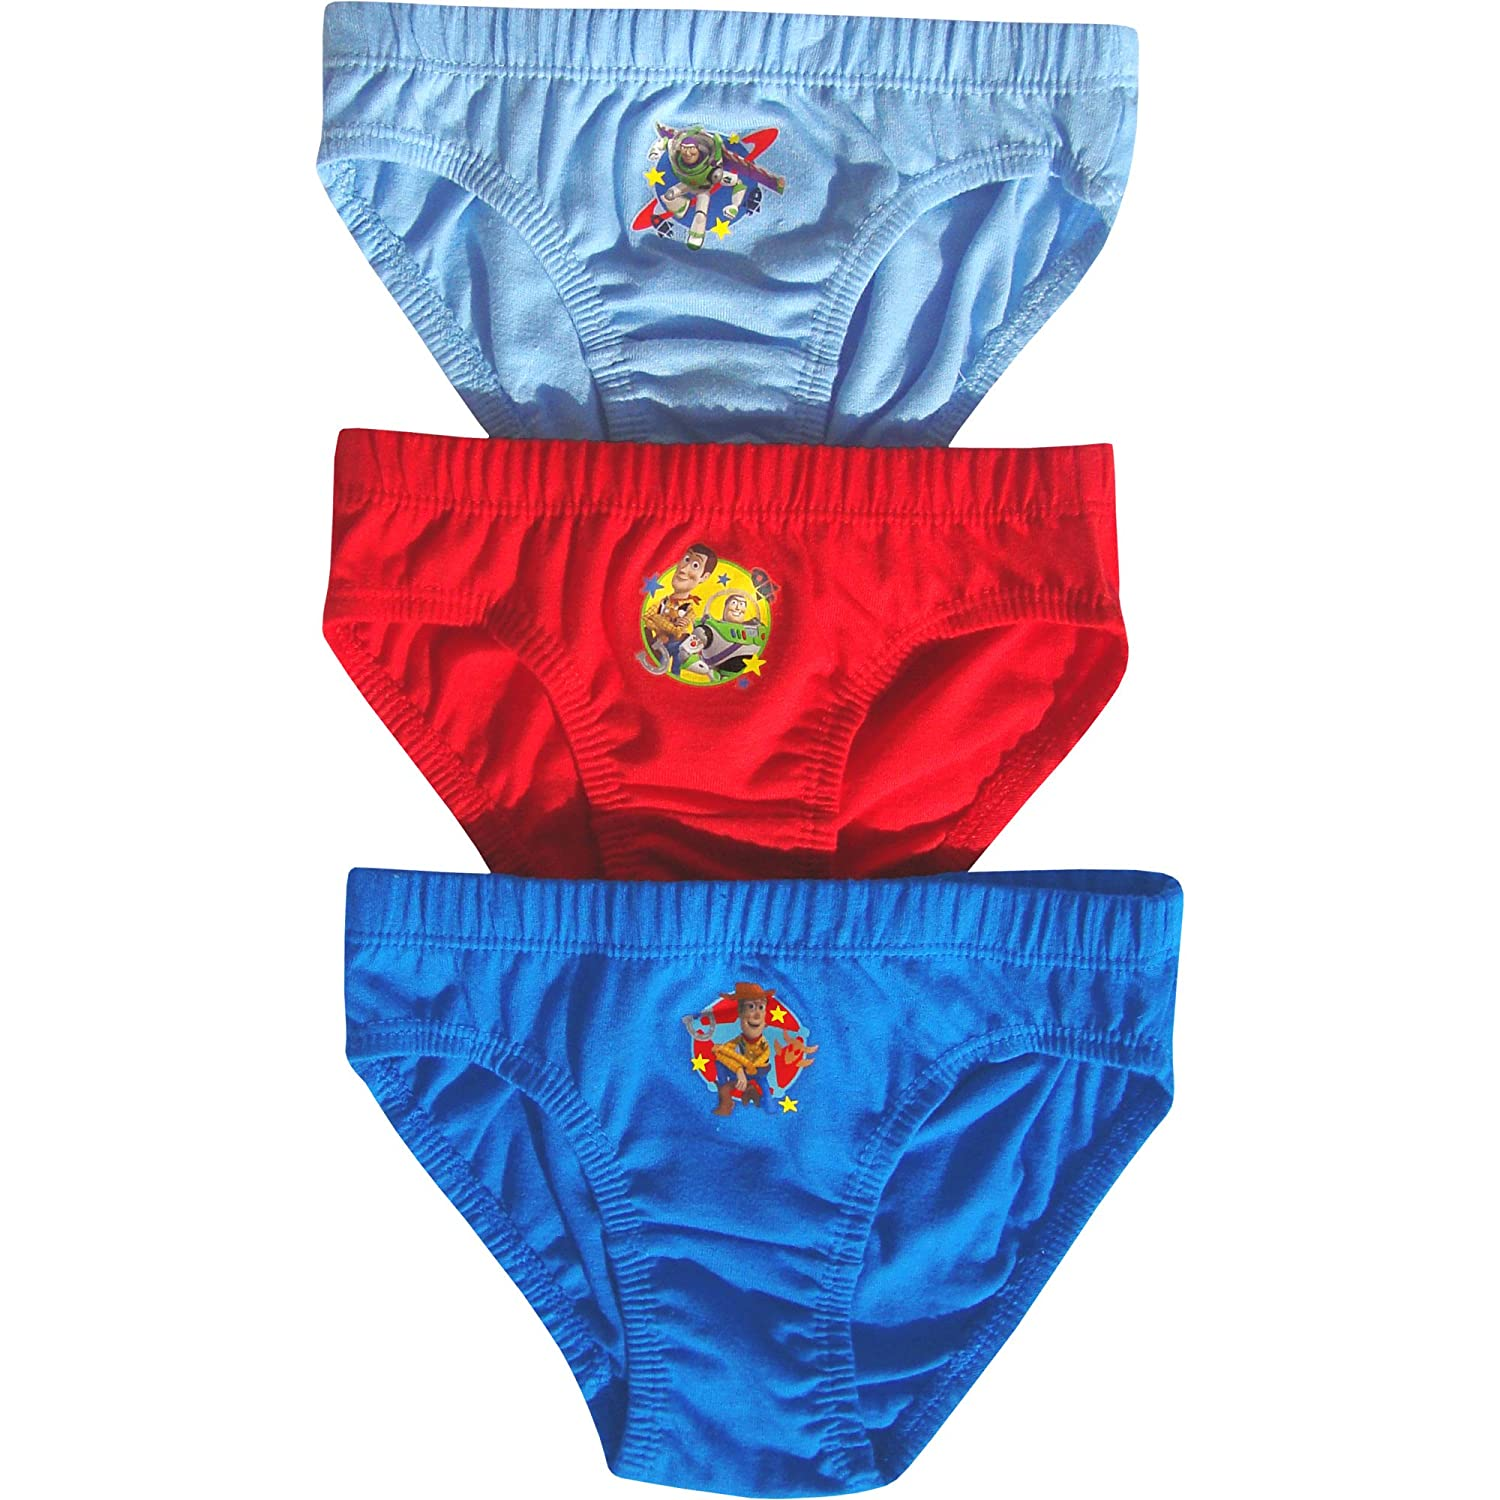 Disney Boy's Toy Story Hipster Briefs Pants Set (3 Pair Pack)